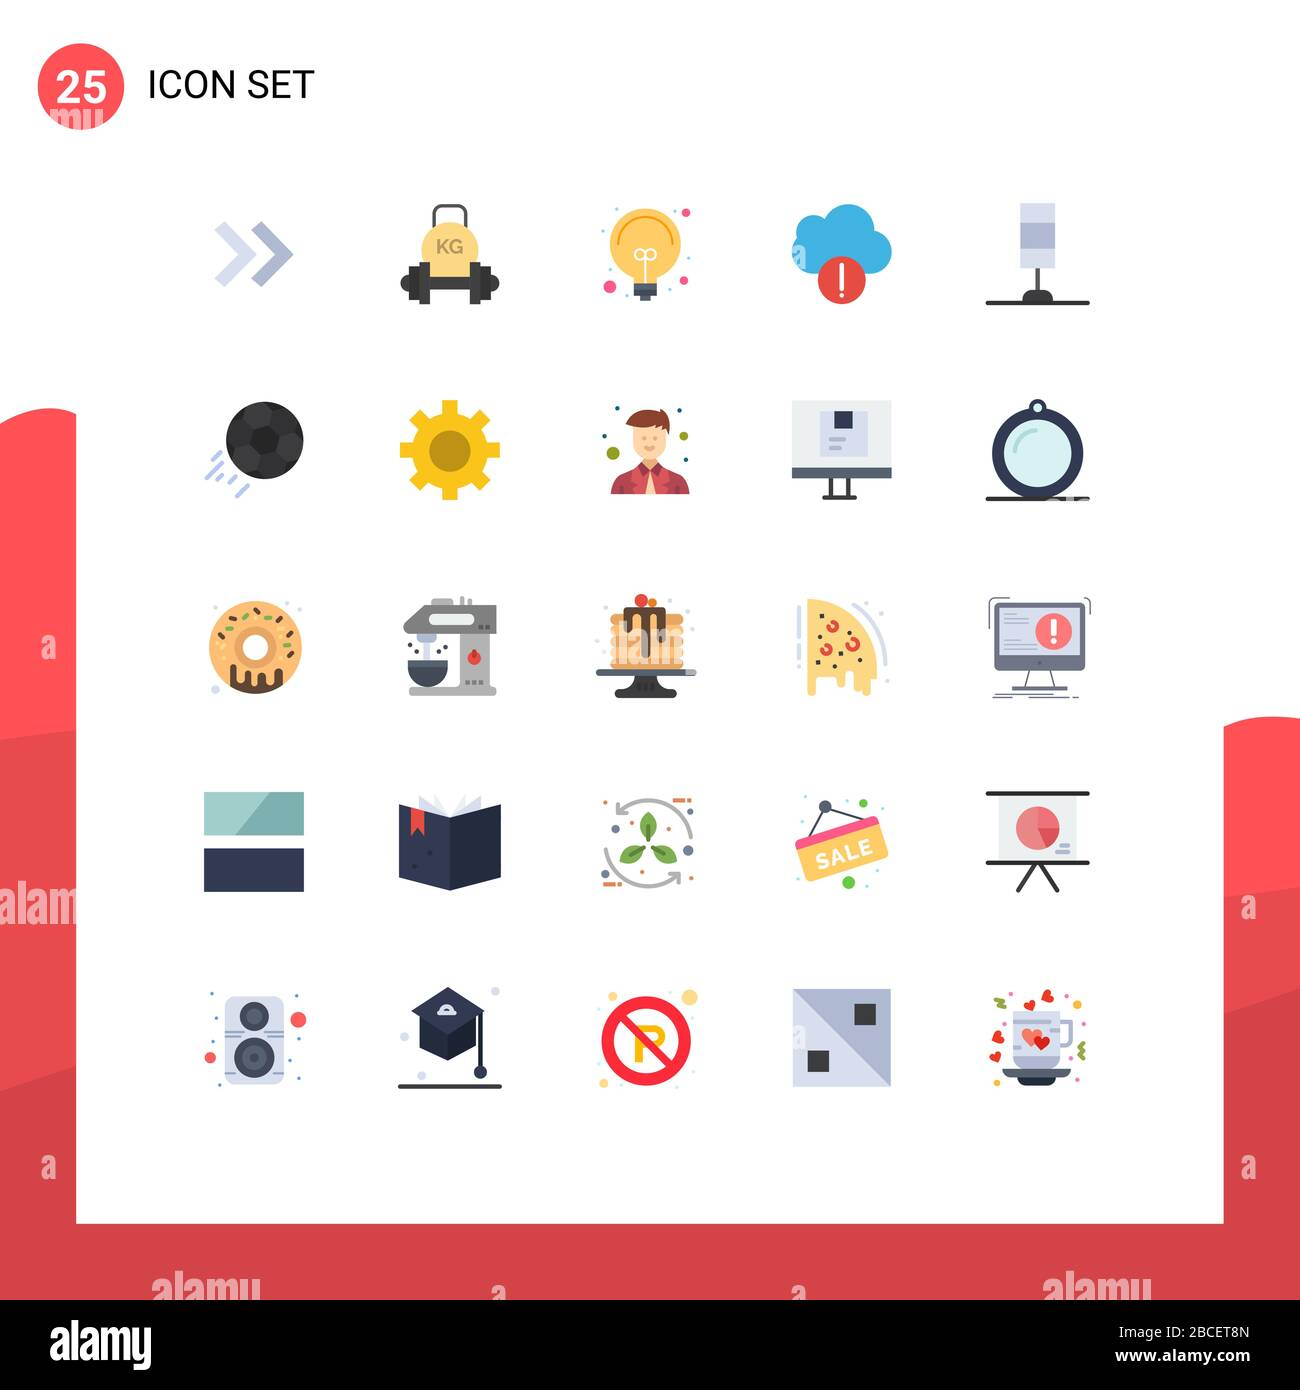 25 Flat Color Concept For Websites Mobile And Apps Light Interior Bulb Data Alert Editable Vector Design Elements Stock Vector Image Art Alamy